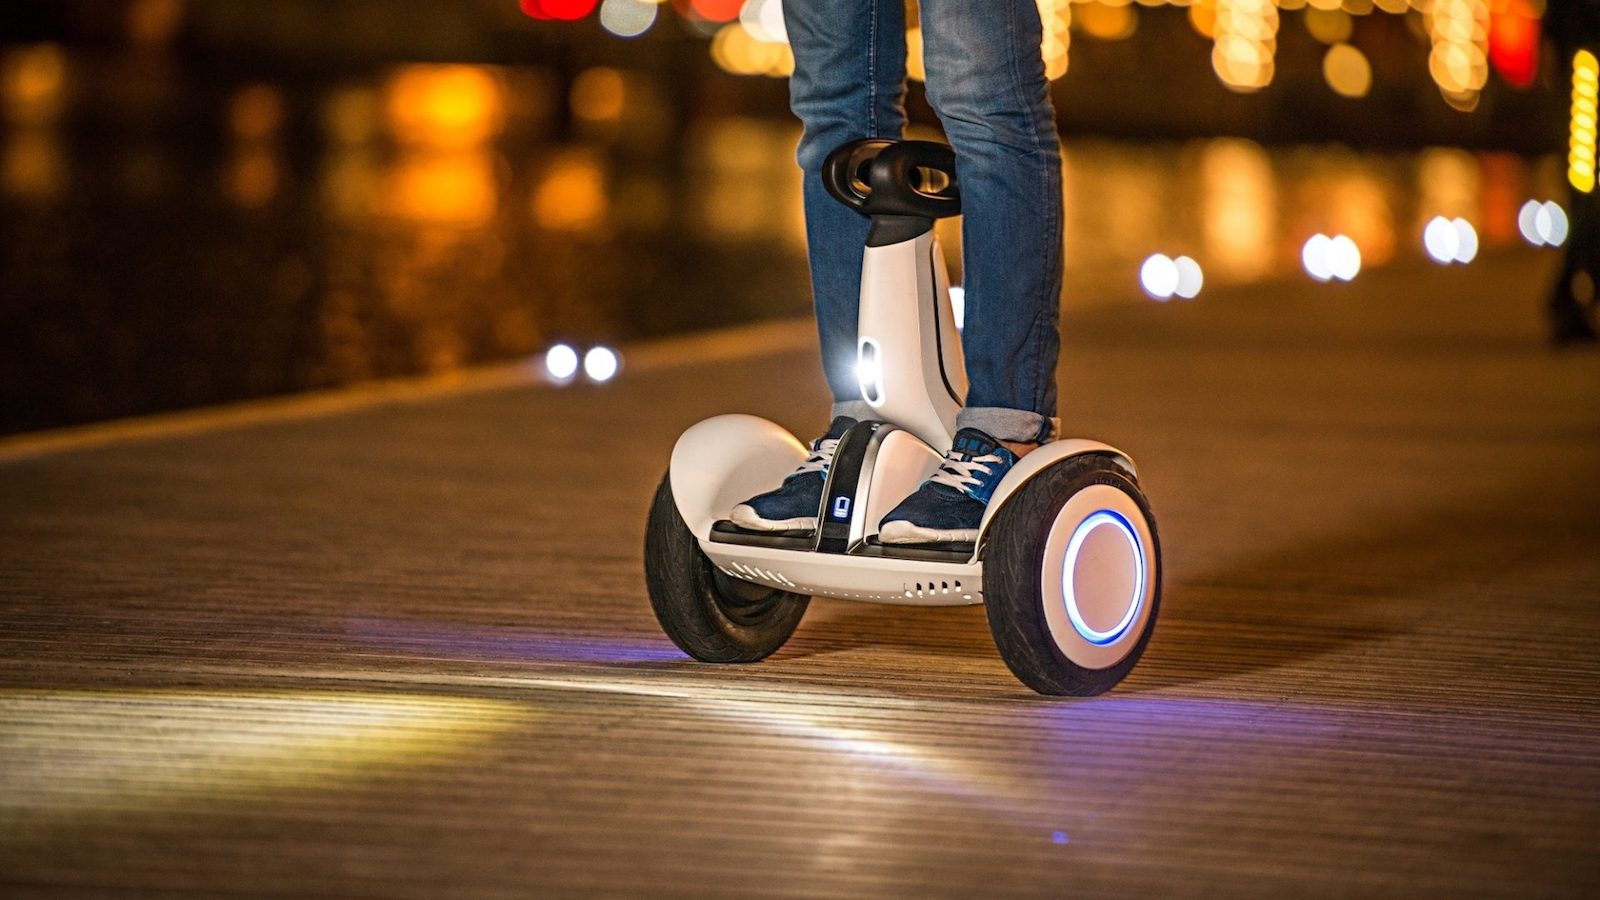 Segway S-PLUS electric transporter